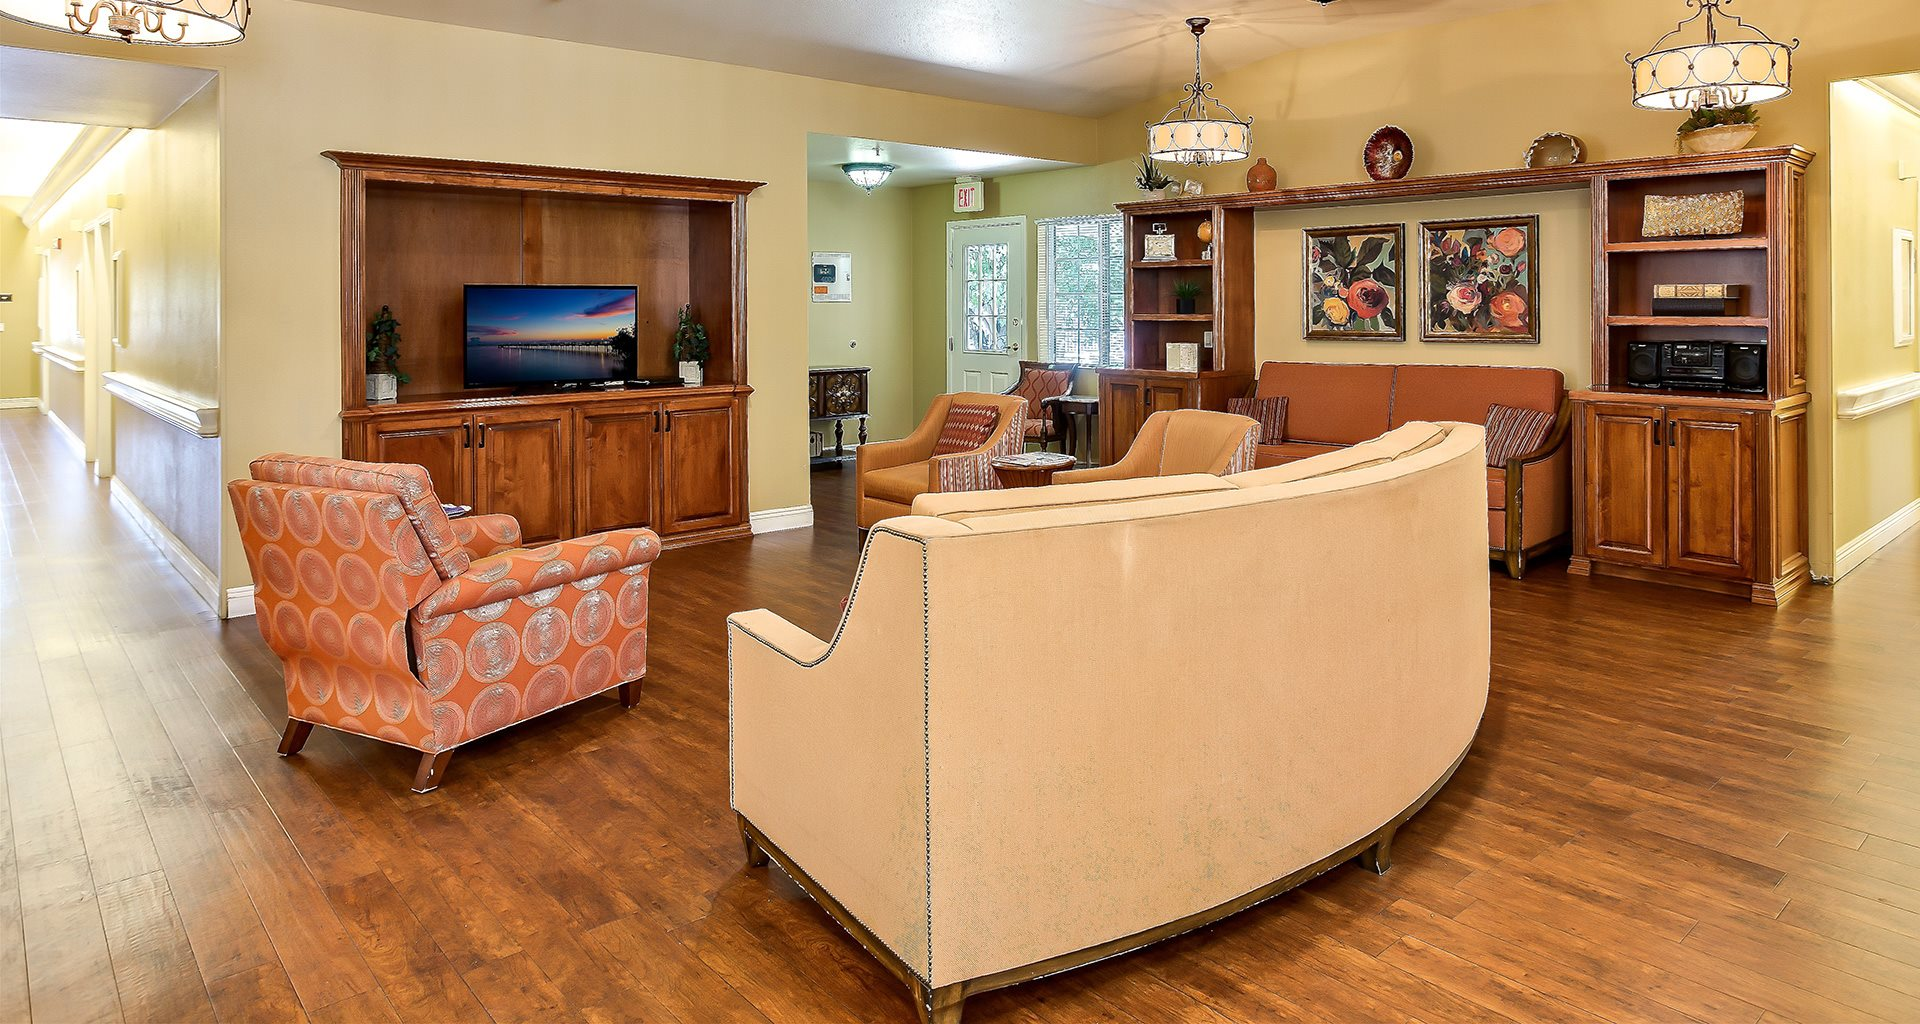 Modern Floor Plans Available at Pacifica Senior Living Tucson, Tucson, AZ